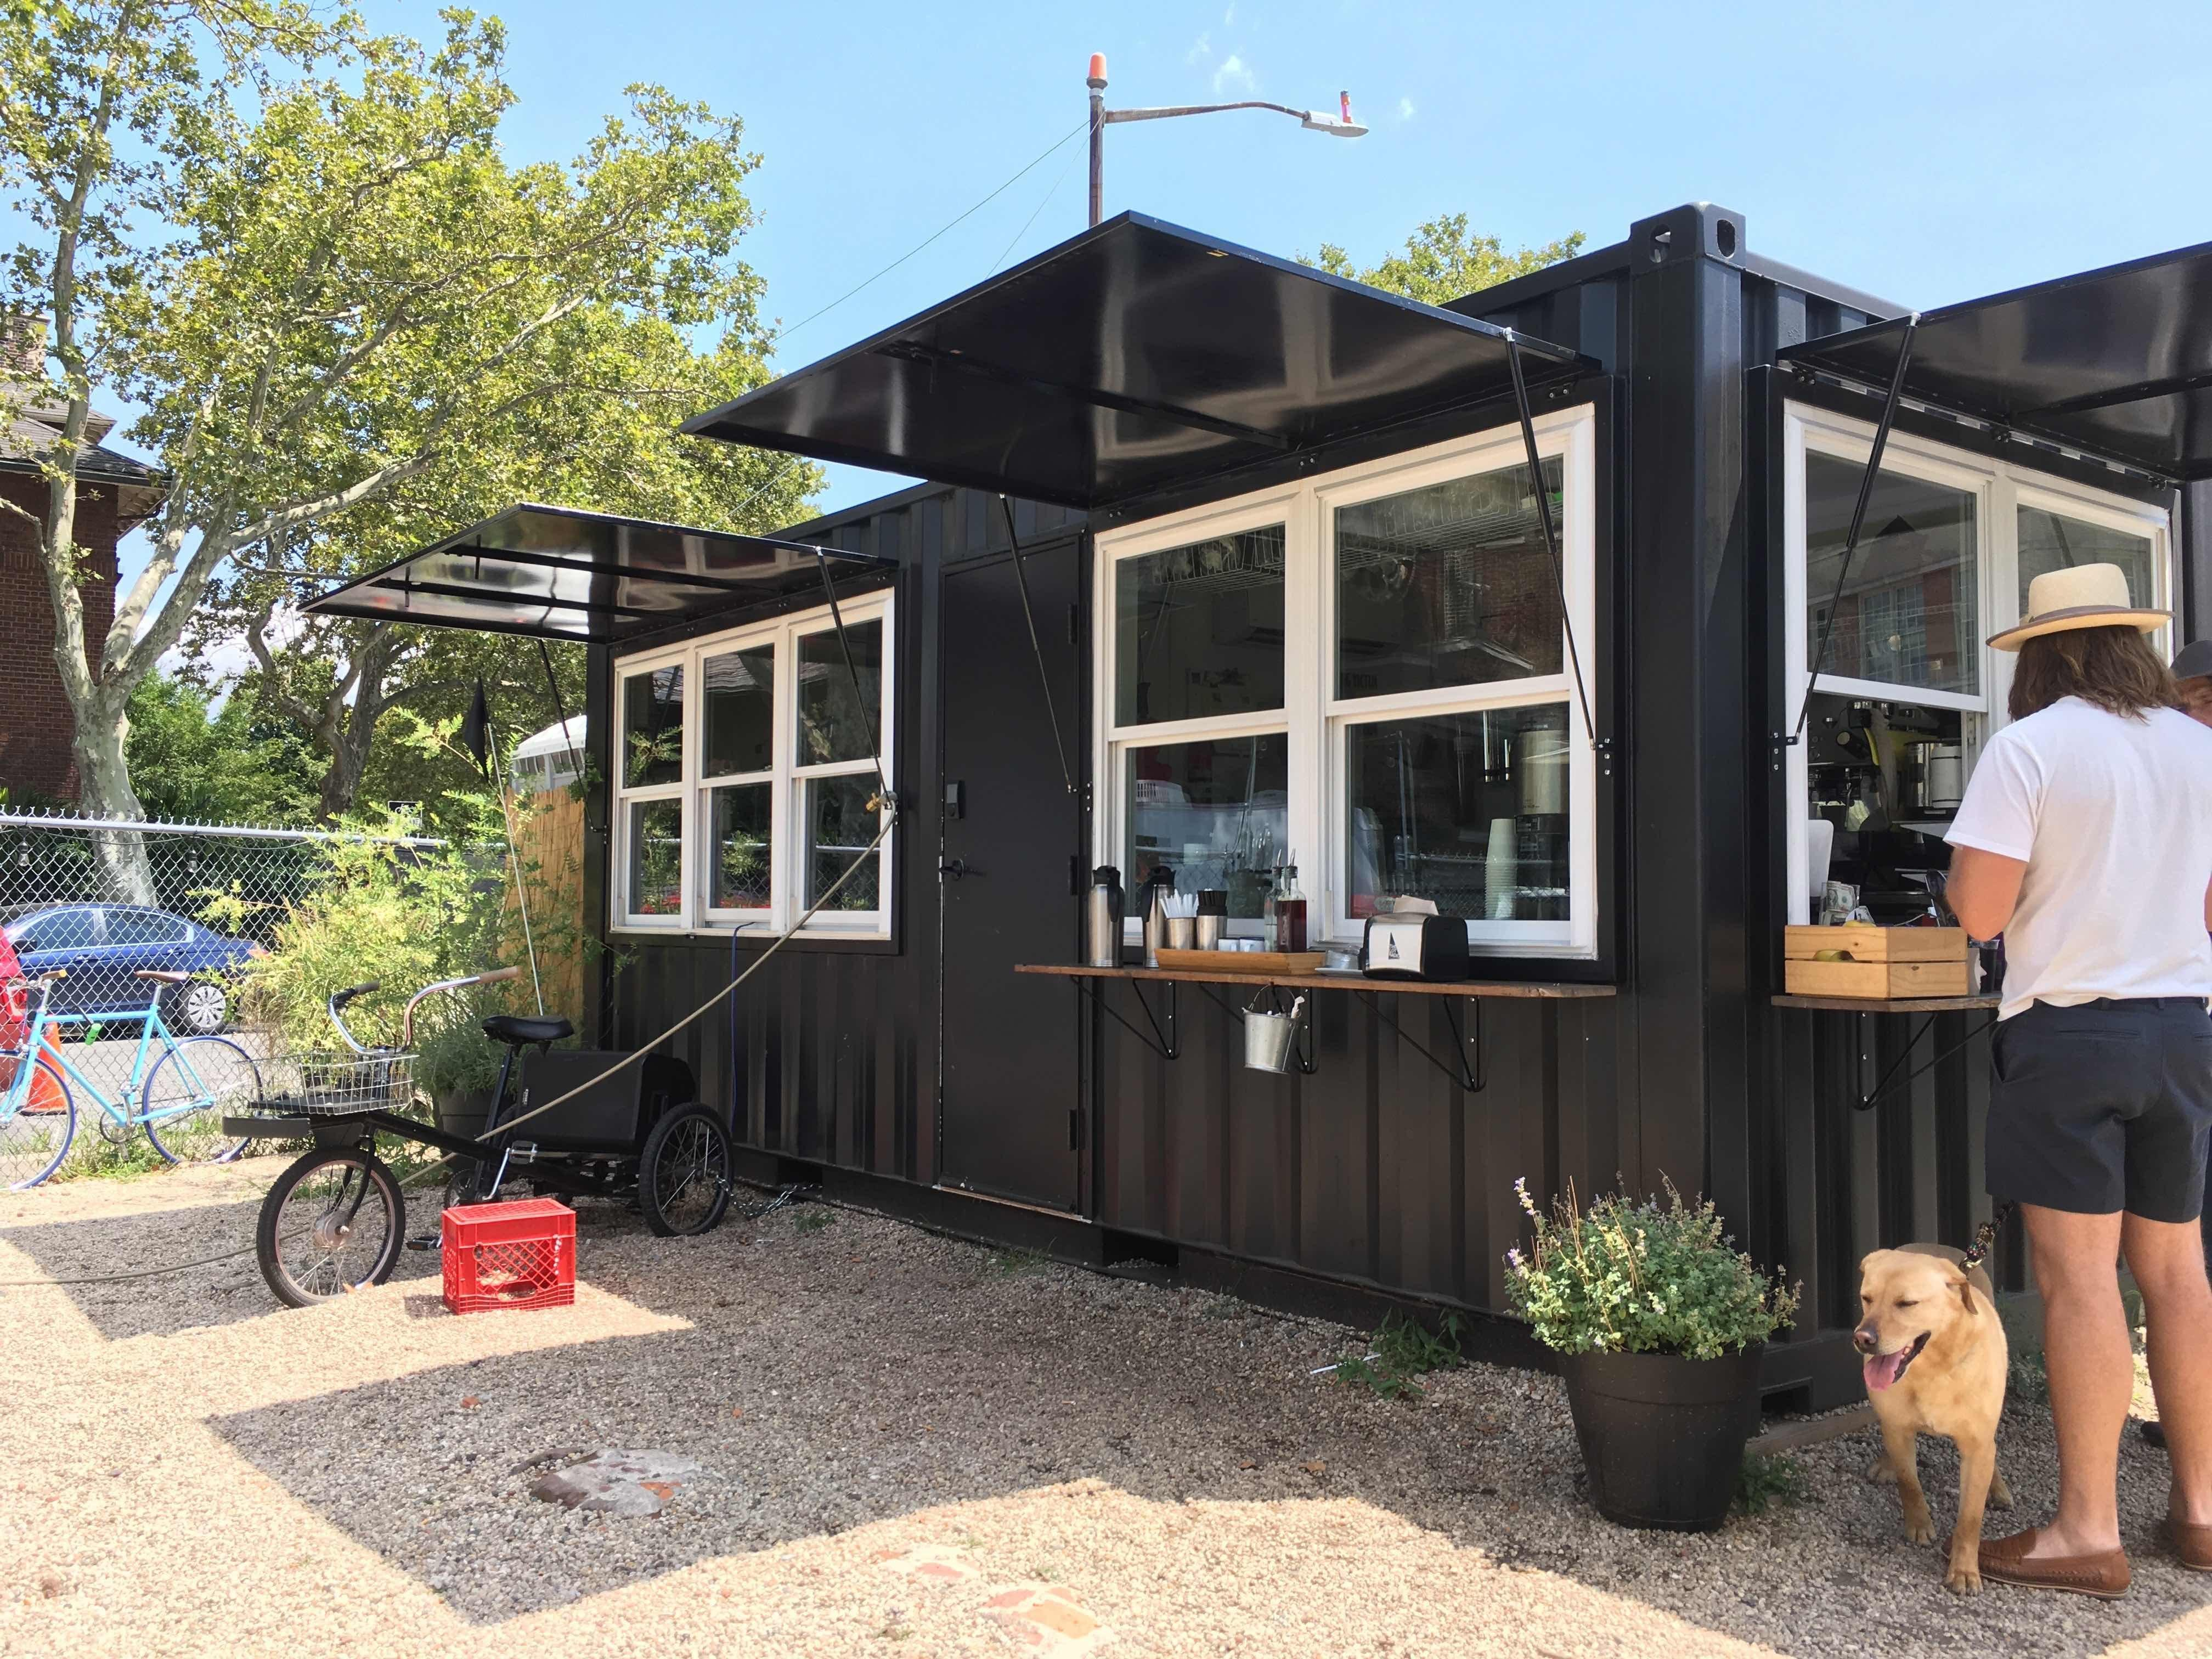 Brooklyn Shipping Container Caf Turns Out Tunes